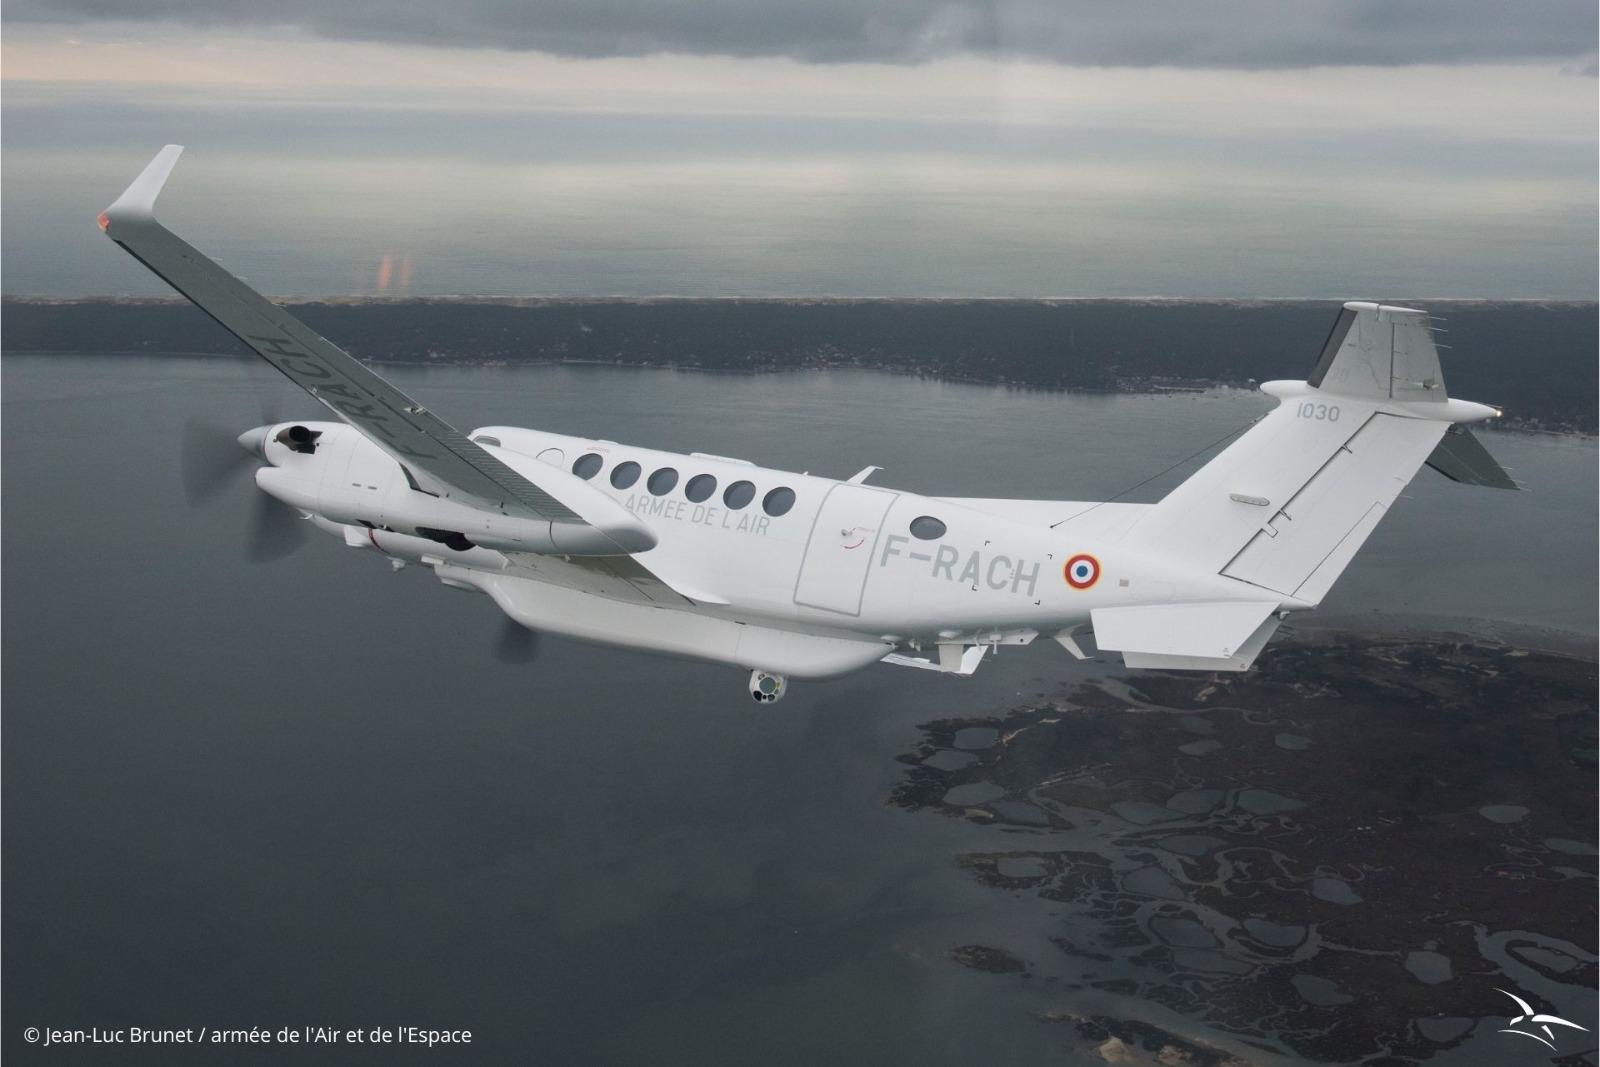 France Takes Delivery Of Second King Air-based ISR Platform